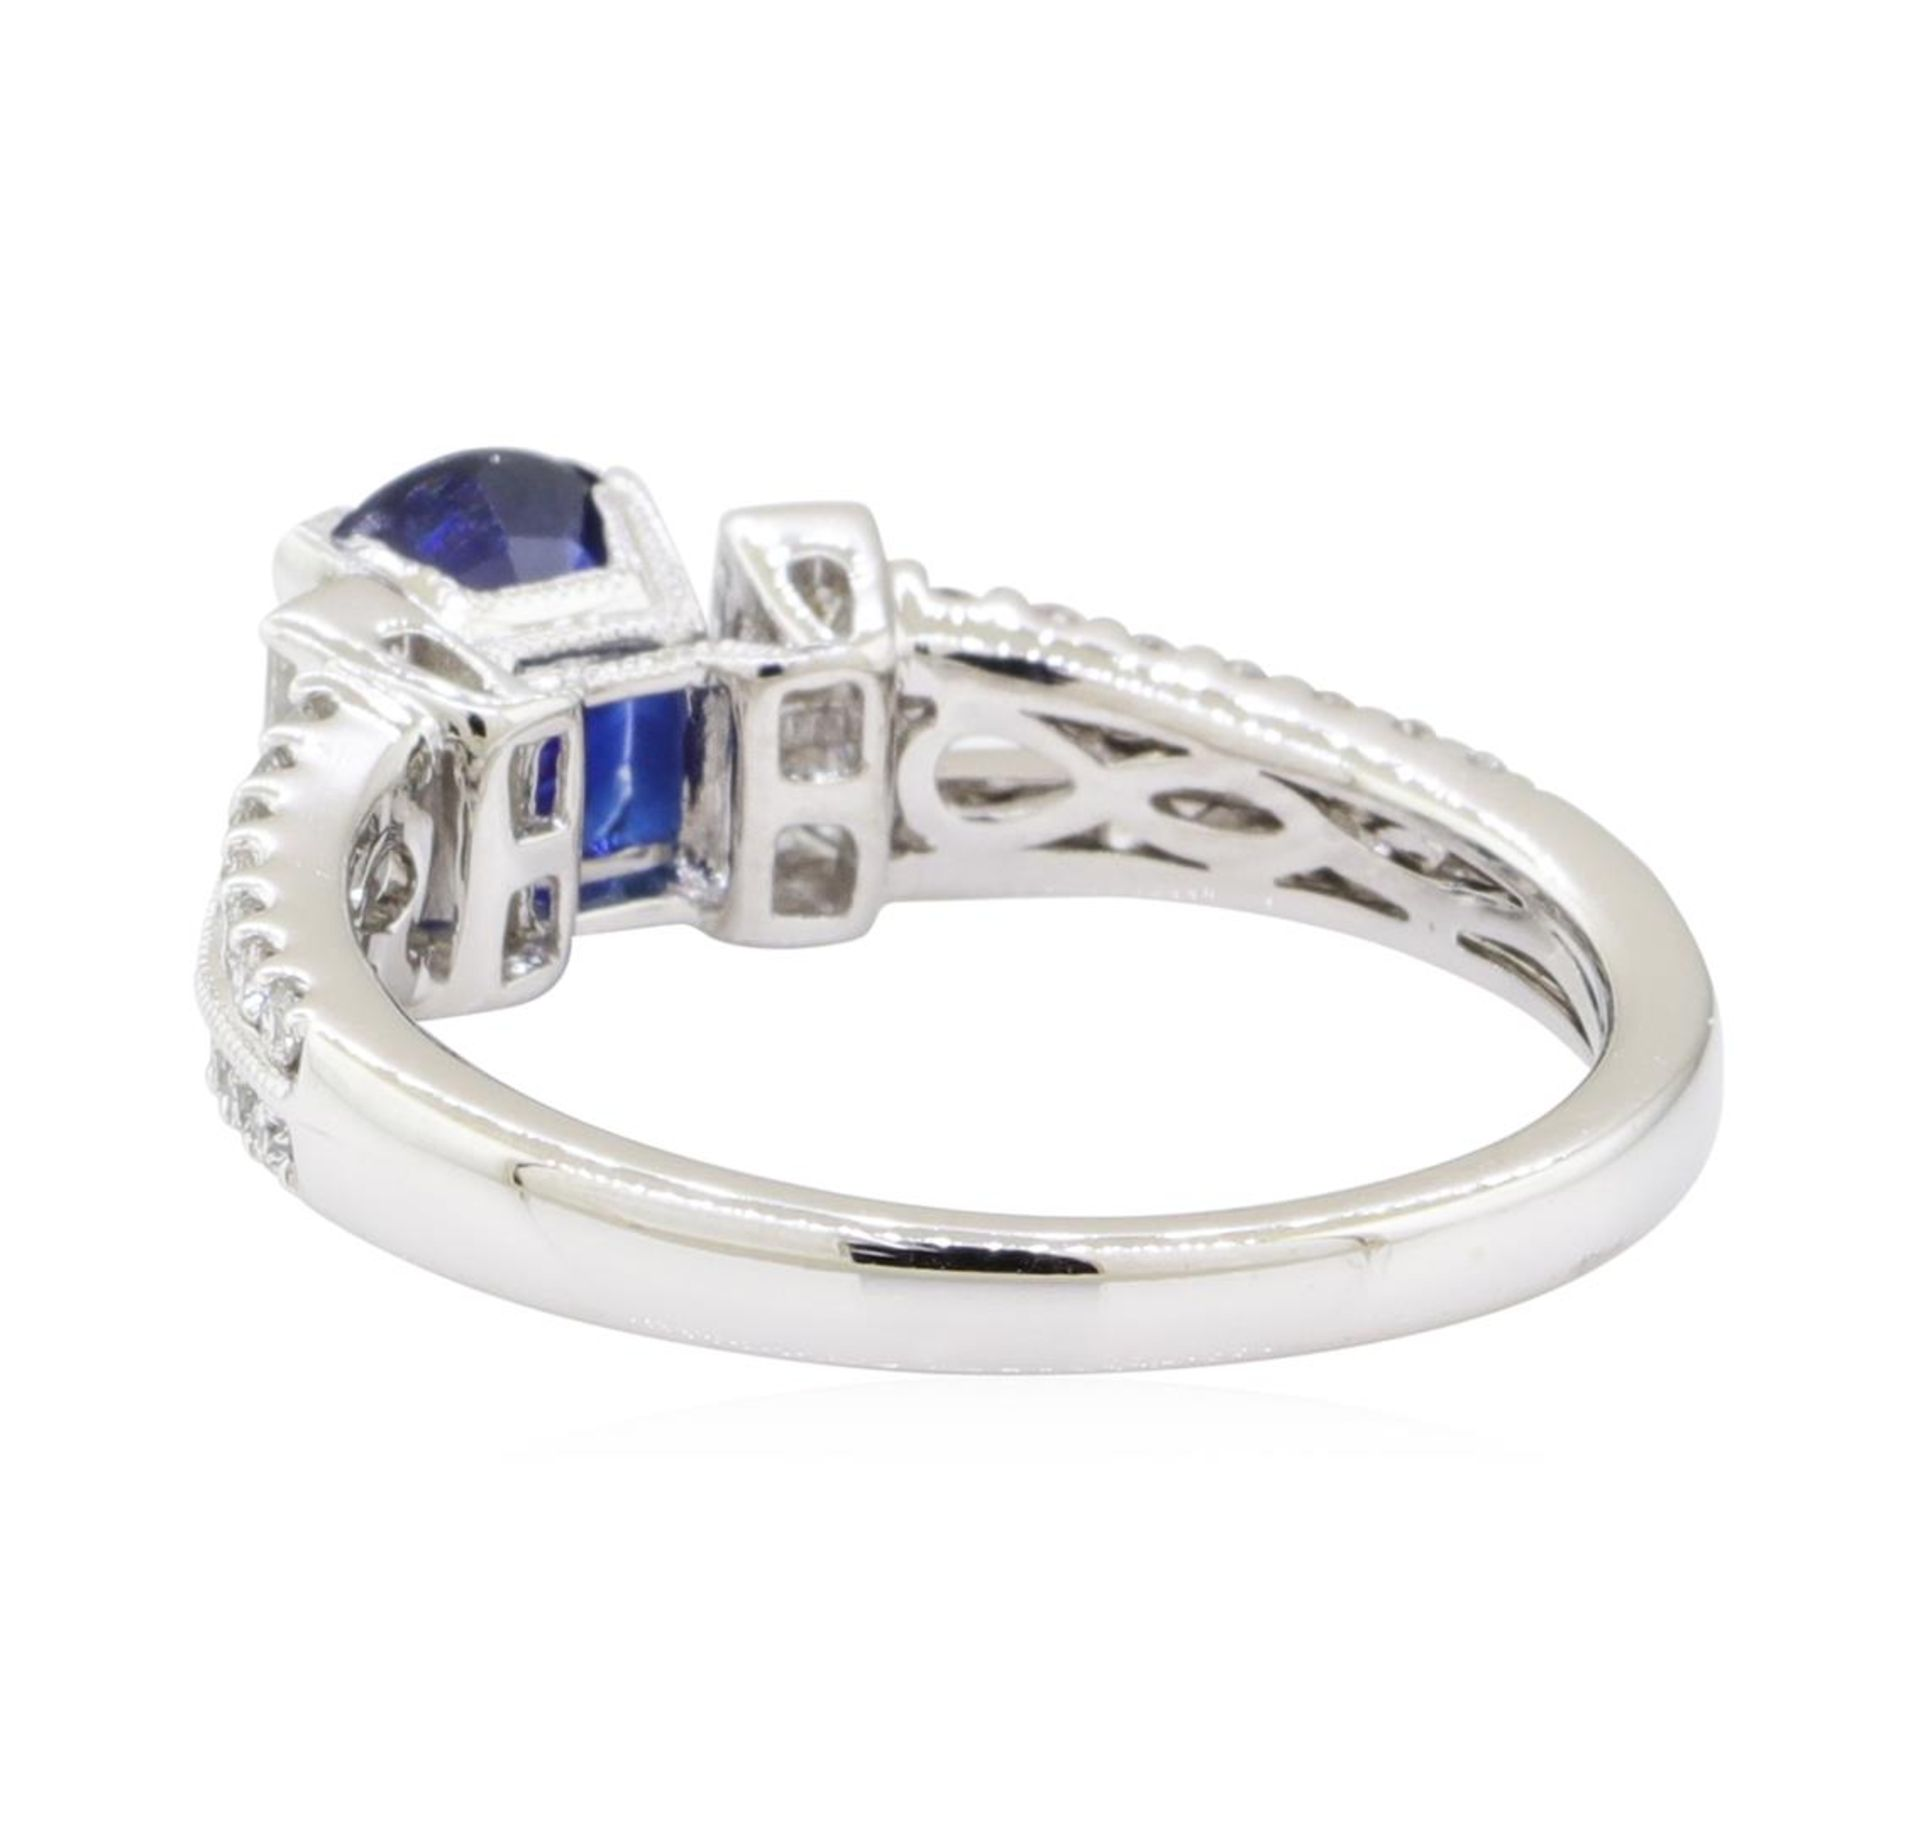 1.98 ctw Sapphire and Diamond Ring - 18KT White Gold - Image 3 of 5